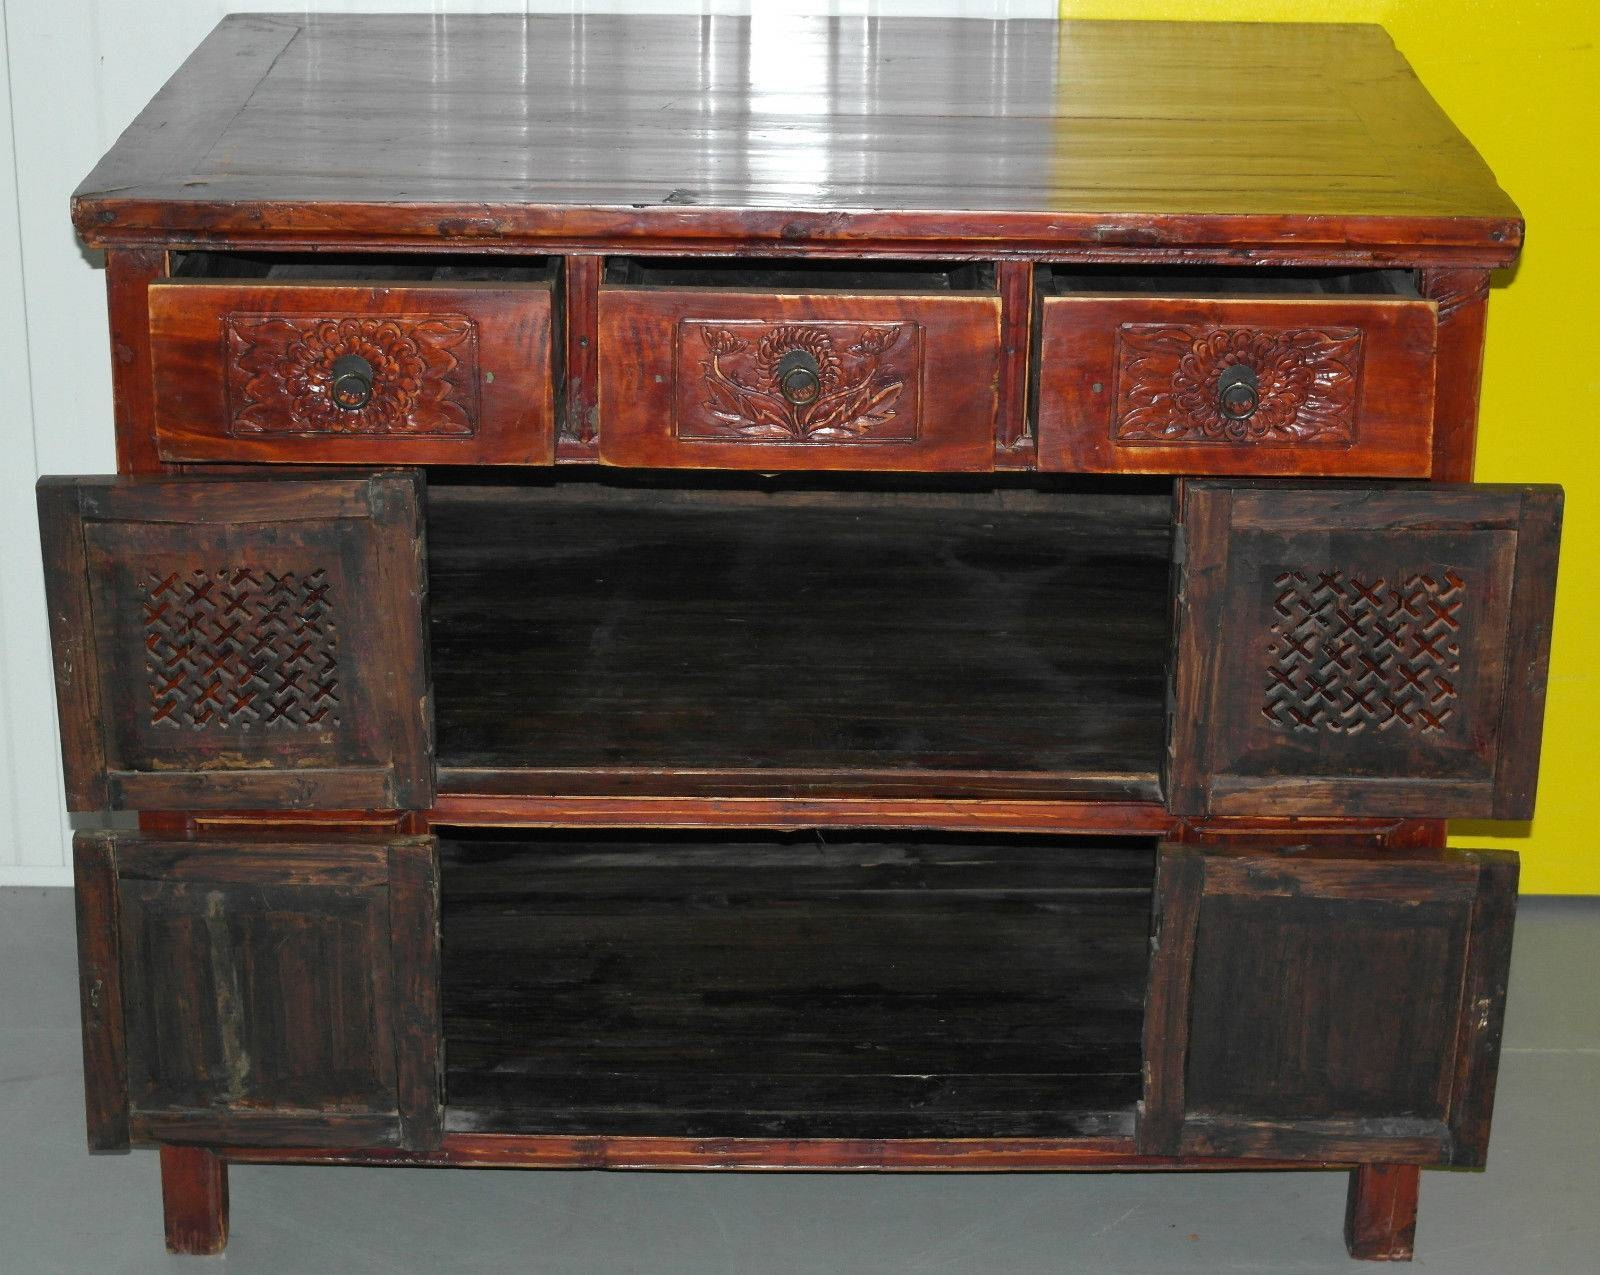 Chinese Redwood Antique Style Very Deep Sideboard Drawers intended for Chinese Sideboards (Image 12 of 30)